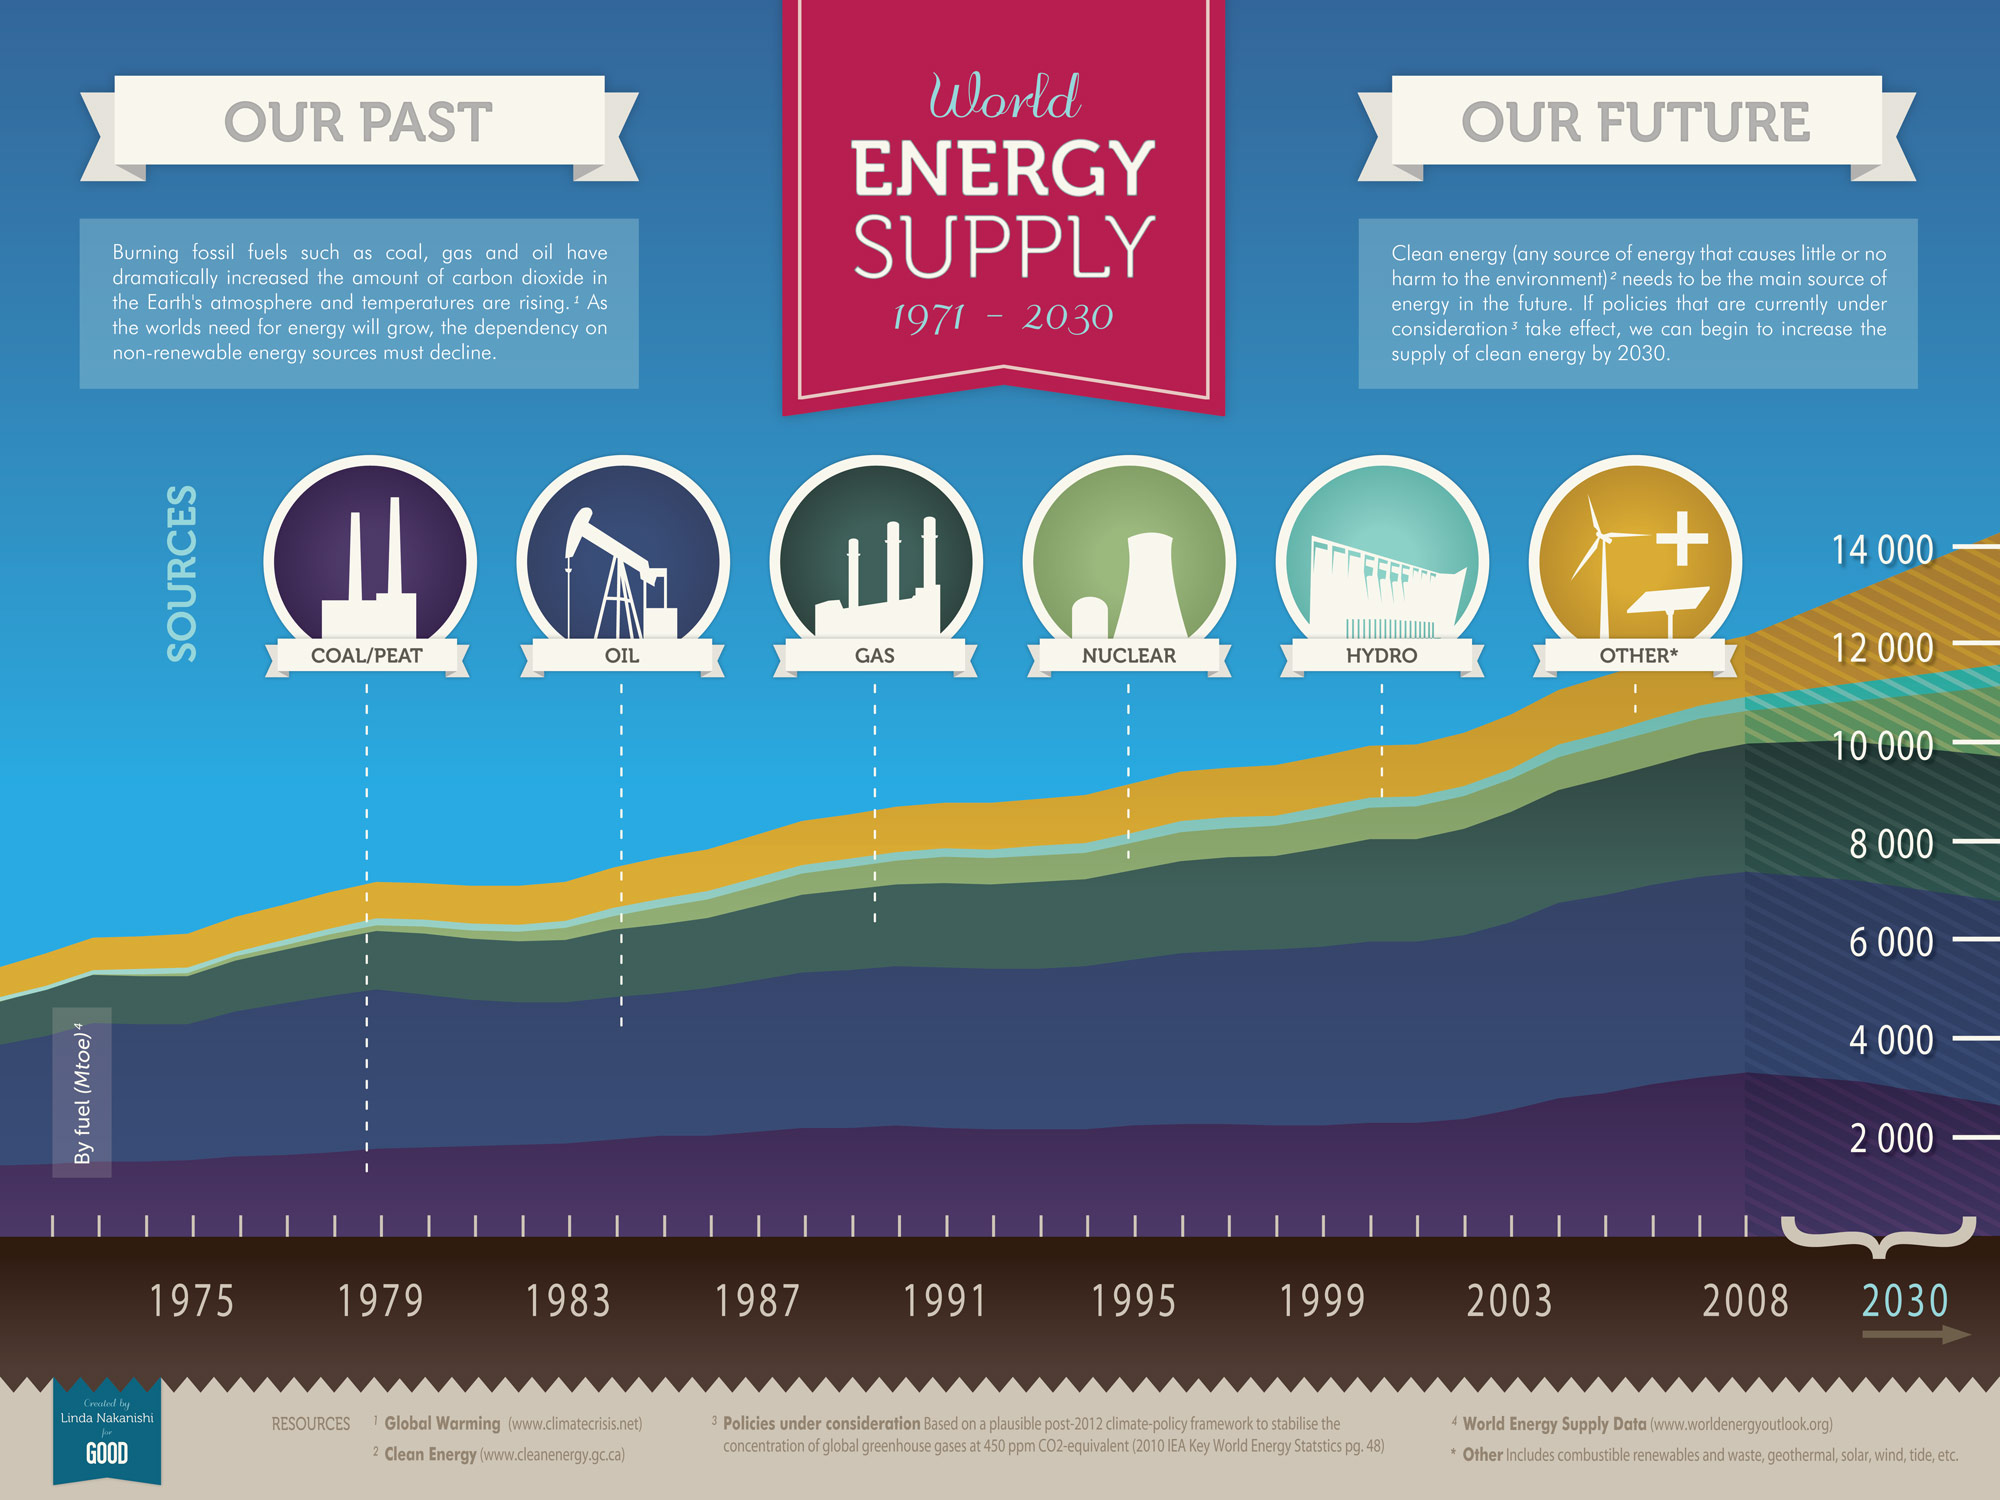 world-energy-supply-1971--2030_50290afe017d2